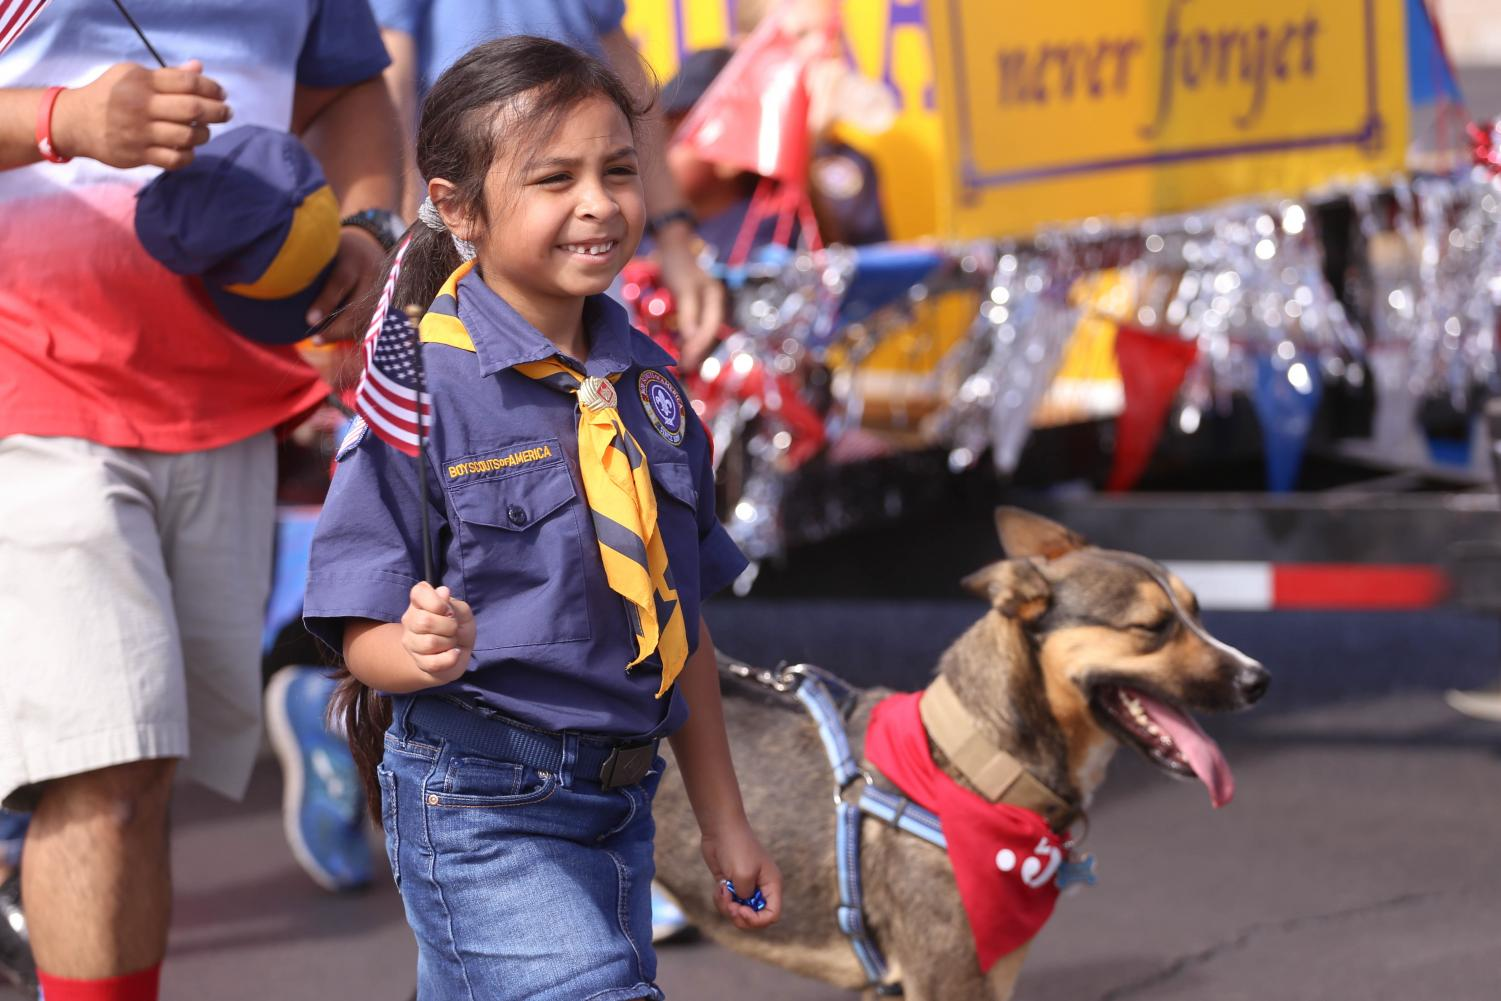 The+community+lines+up+along+the+sidewalk+in+Eastside+El+Paso+for+the+38th+annual+People%27s+Parade+on+Wednesday%2C+July+4th.